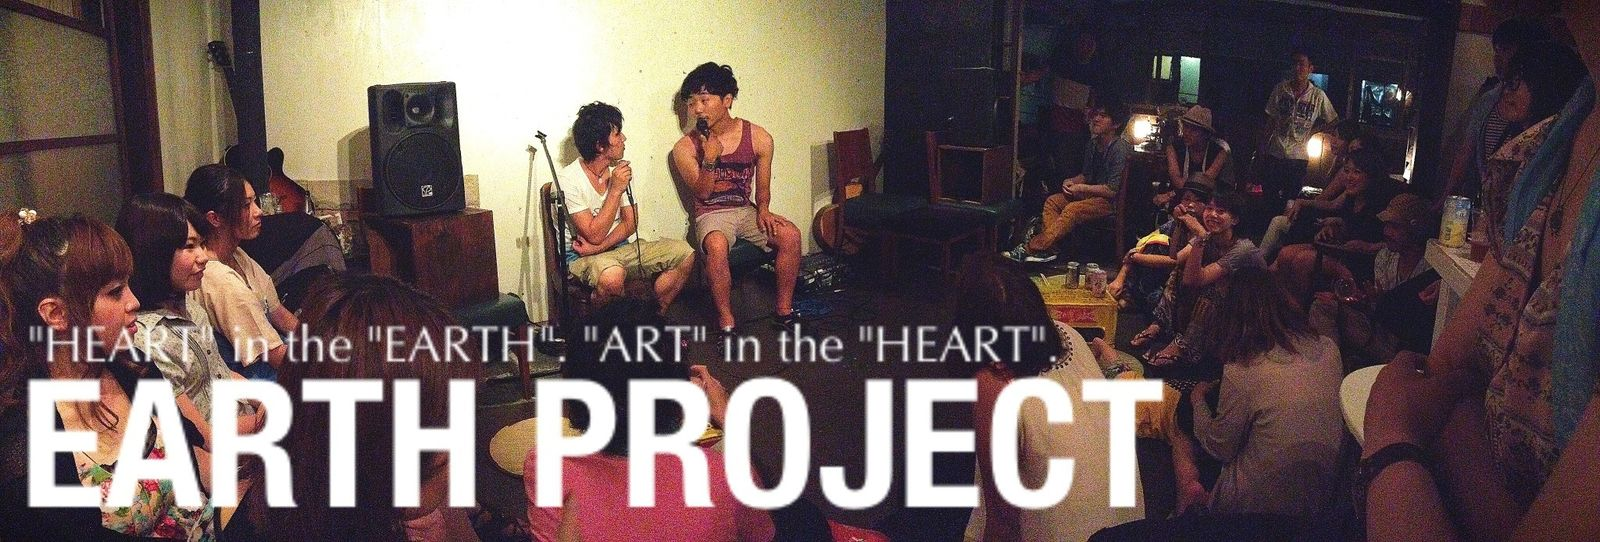 Charity Event EARTH PROJECT